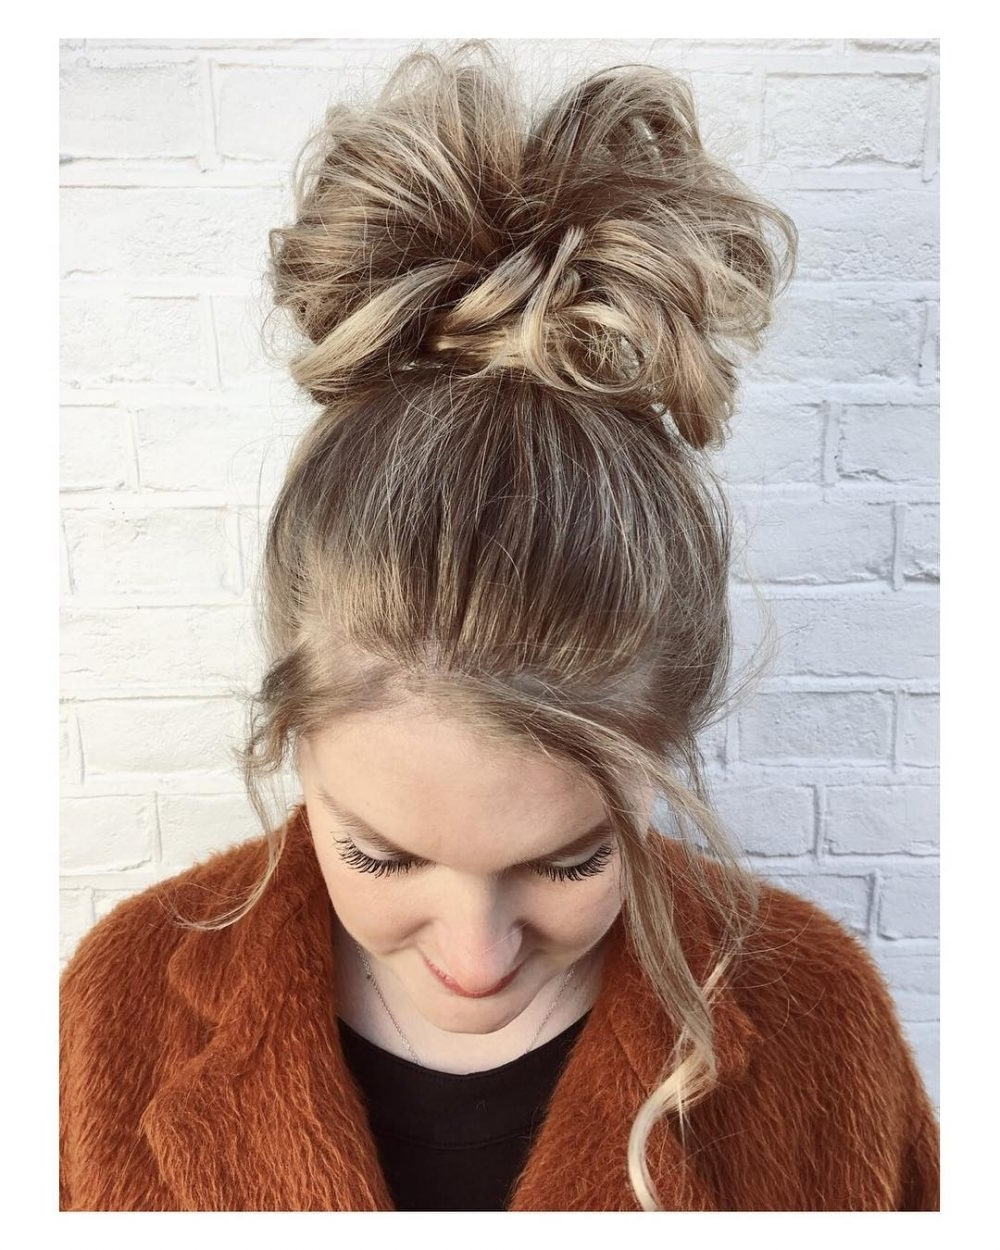 34 Easy Updos For Long Hair Trending For 2018 Intended For Easy To Do Updo Hairstyles For Long Hair (View 5 of 15)